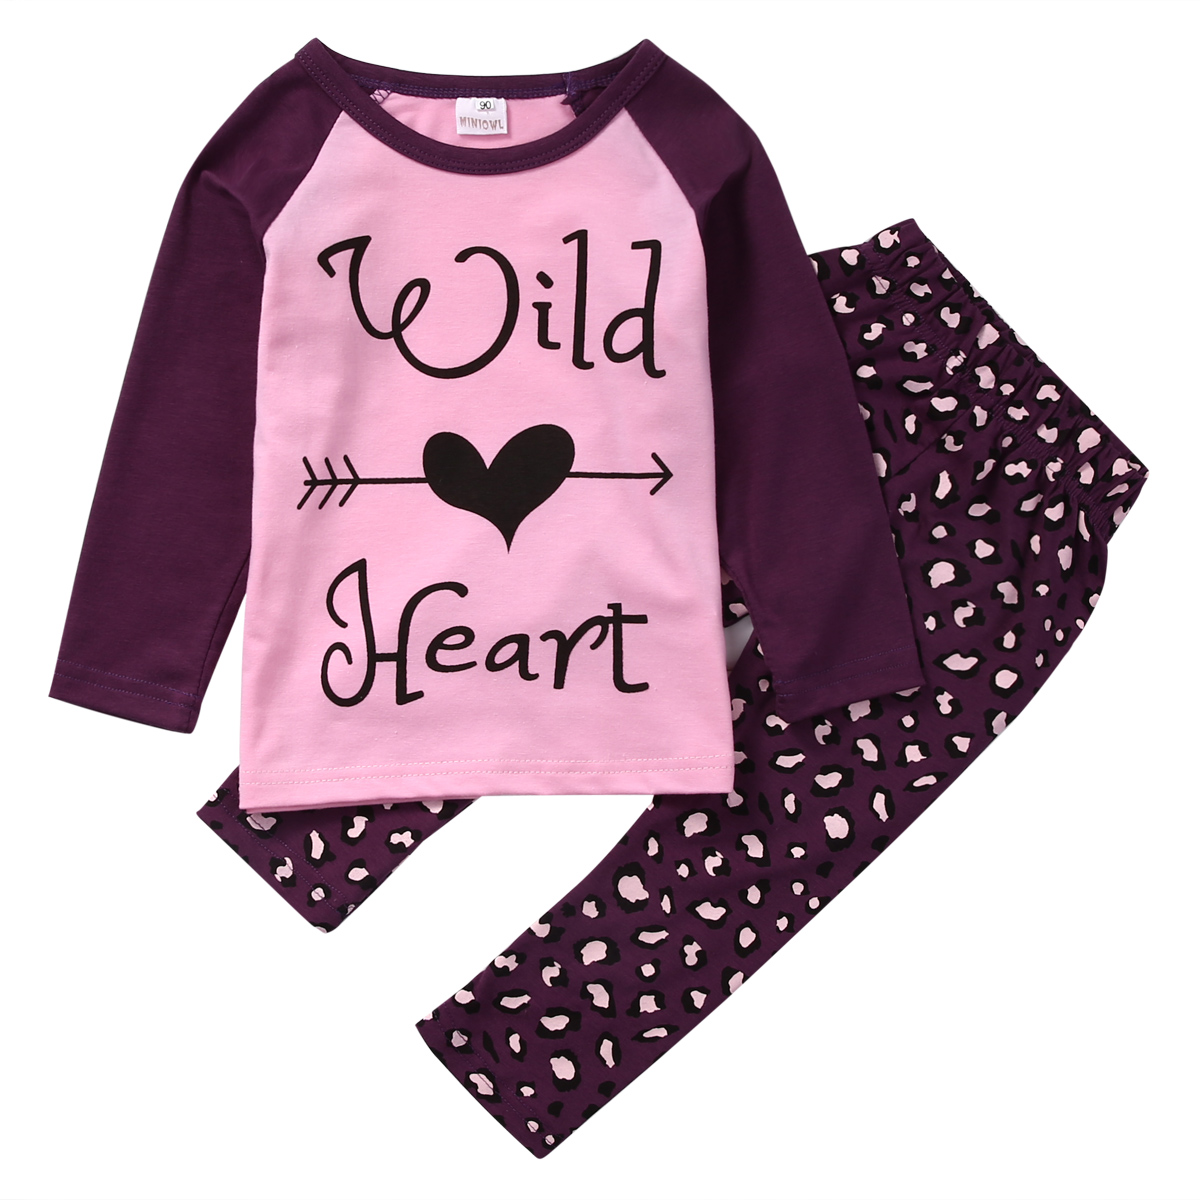 2PCS Set Toddler Kids Girls Clothes Wild Heart Long Sleeve T-shirt Tops Pant Outfit Cute Girl Children Suit 1-6Y 2017 new fashion kids clothes off shoulder camo crop tops hole jean denim pant 2pcs outfit summer suit children clothing set